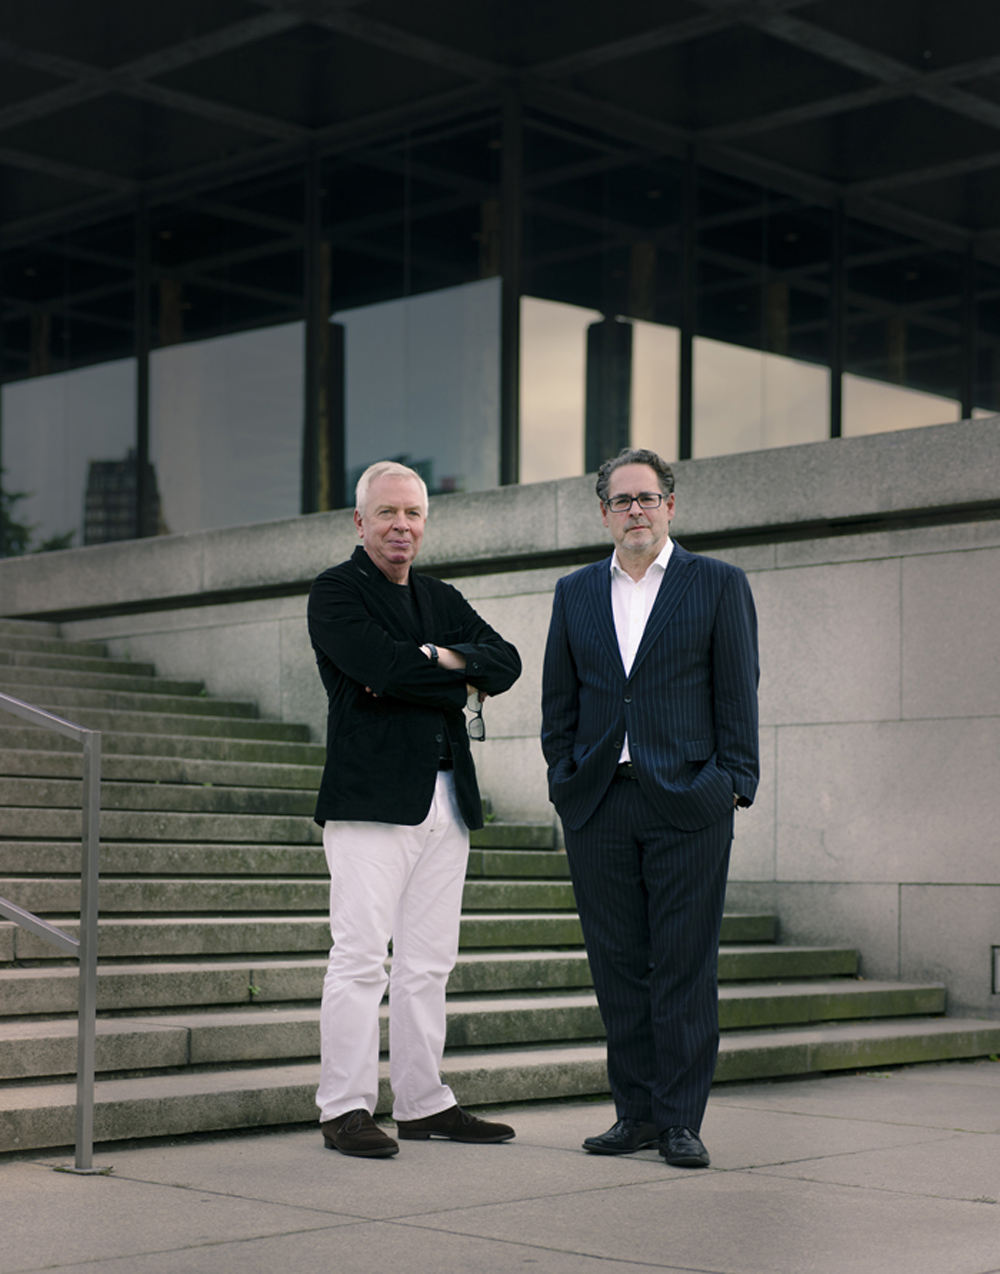 Neue Nationalgalerie: David Chipperfield und Udo Kittelmann. Foto: Simon Menges